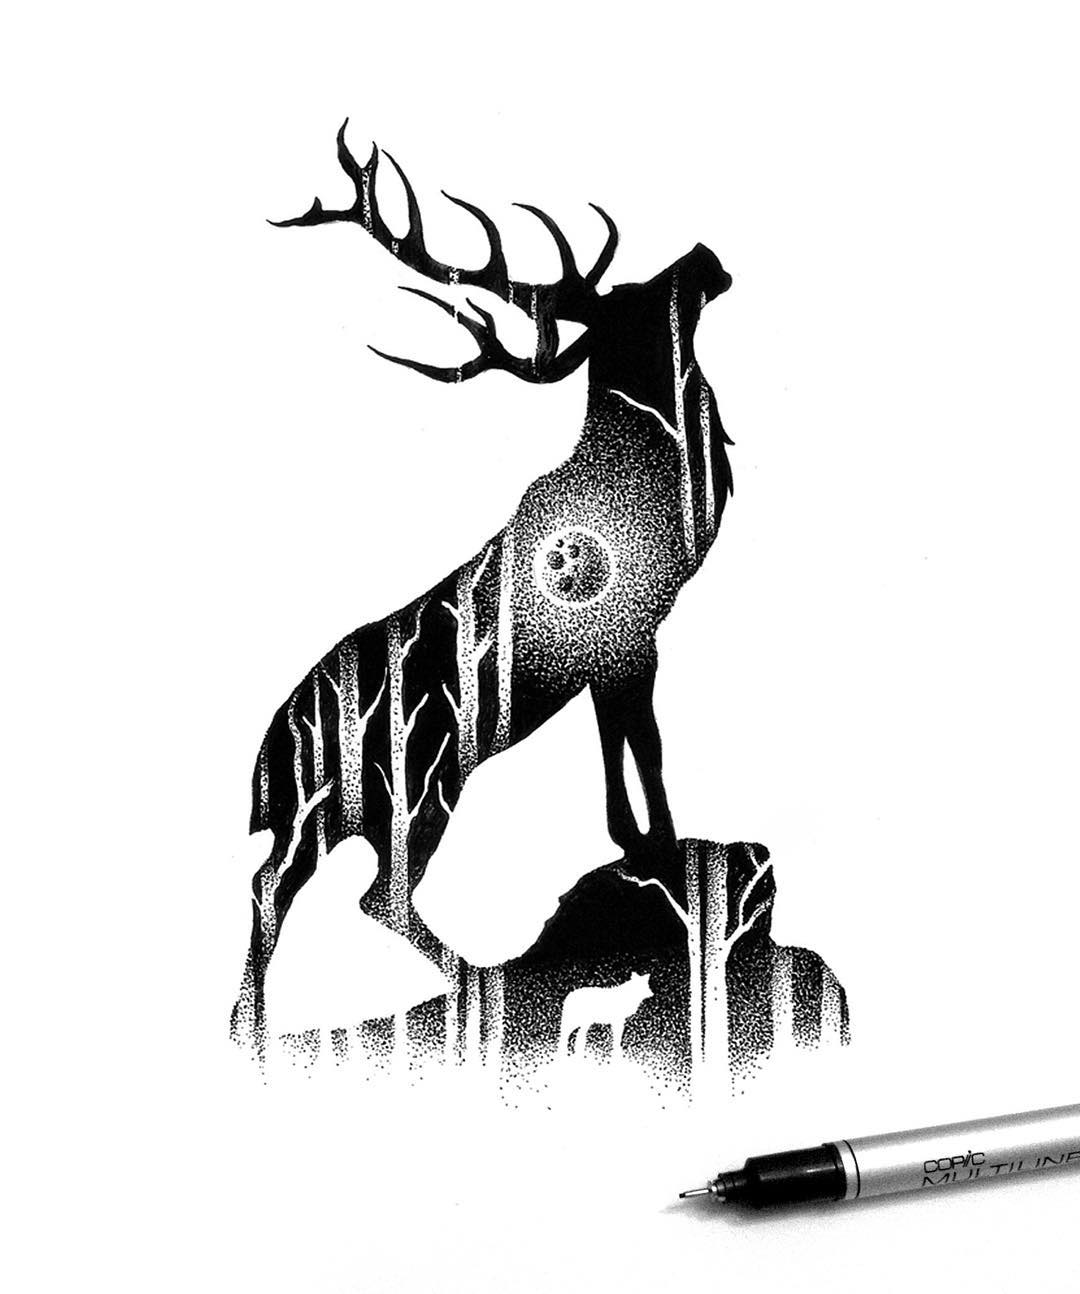 06-Elk-and-the-Forest-Thiago-Bianchini-Eclectic-Collection-of-Drawings-and-Illustrations-www-designstack-co